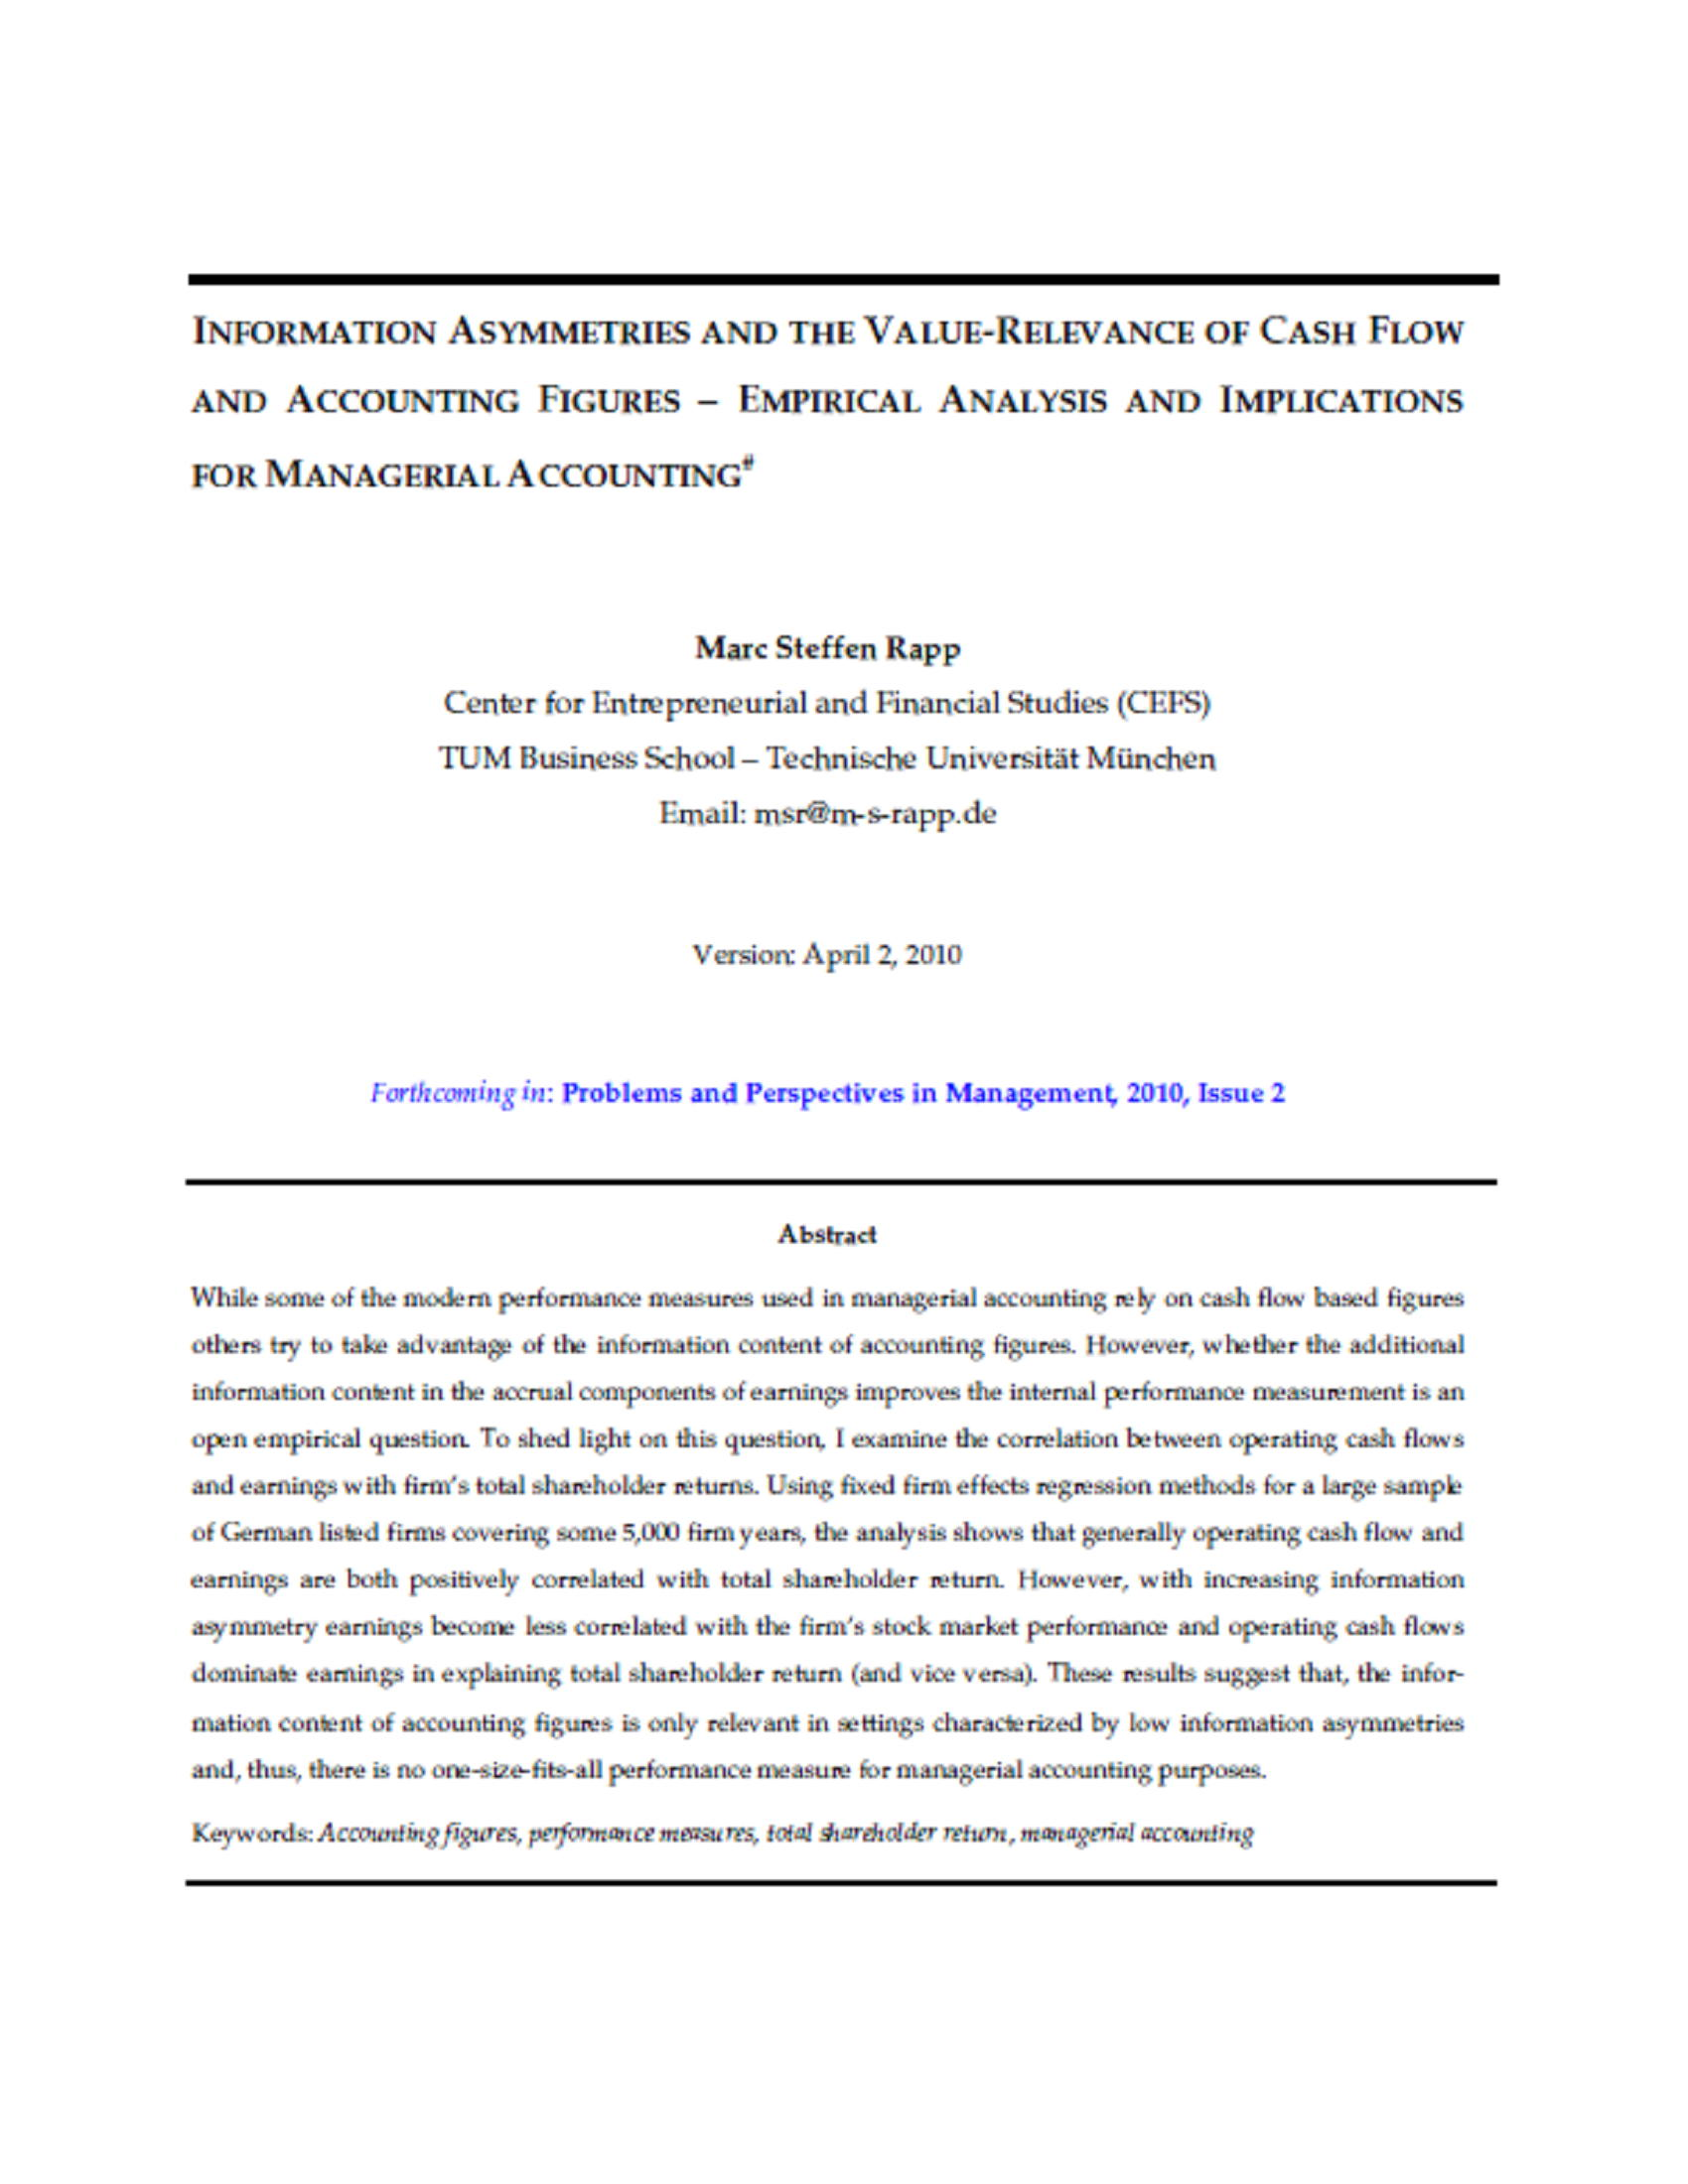 INFORMATION ASYMMETRIES AND THE VALUE-RELEVANCE OF CASH FLOW AND ACCOUNTING FIGURES 25